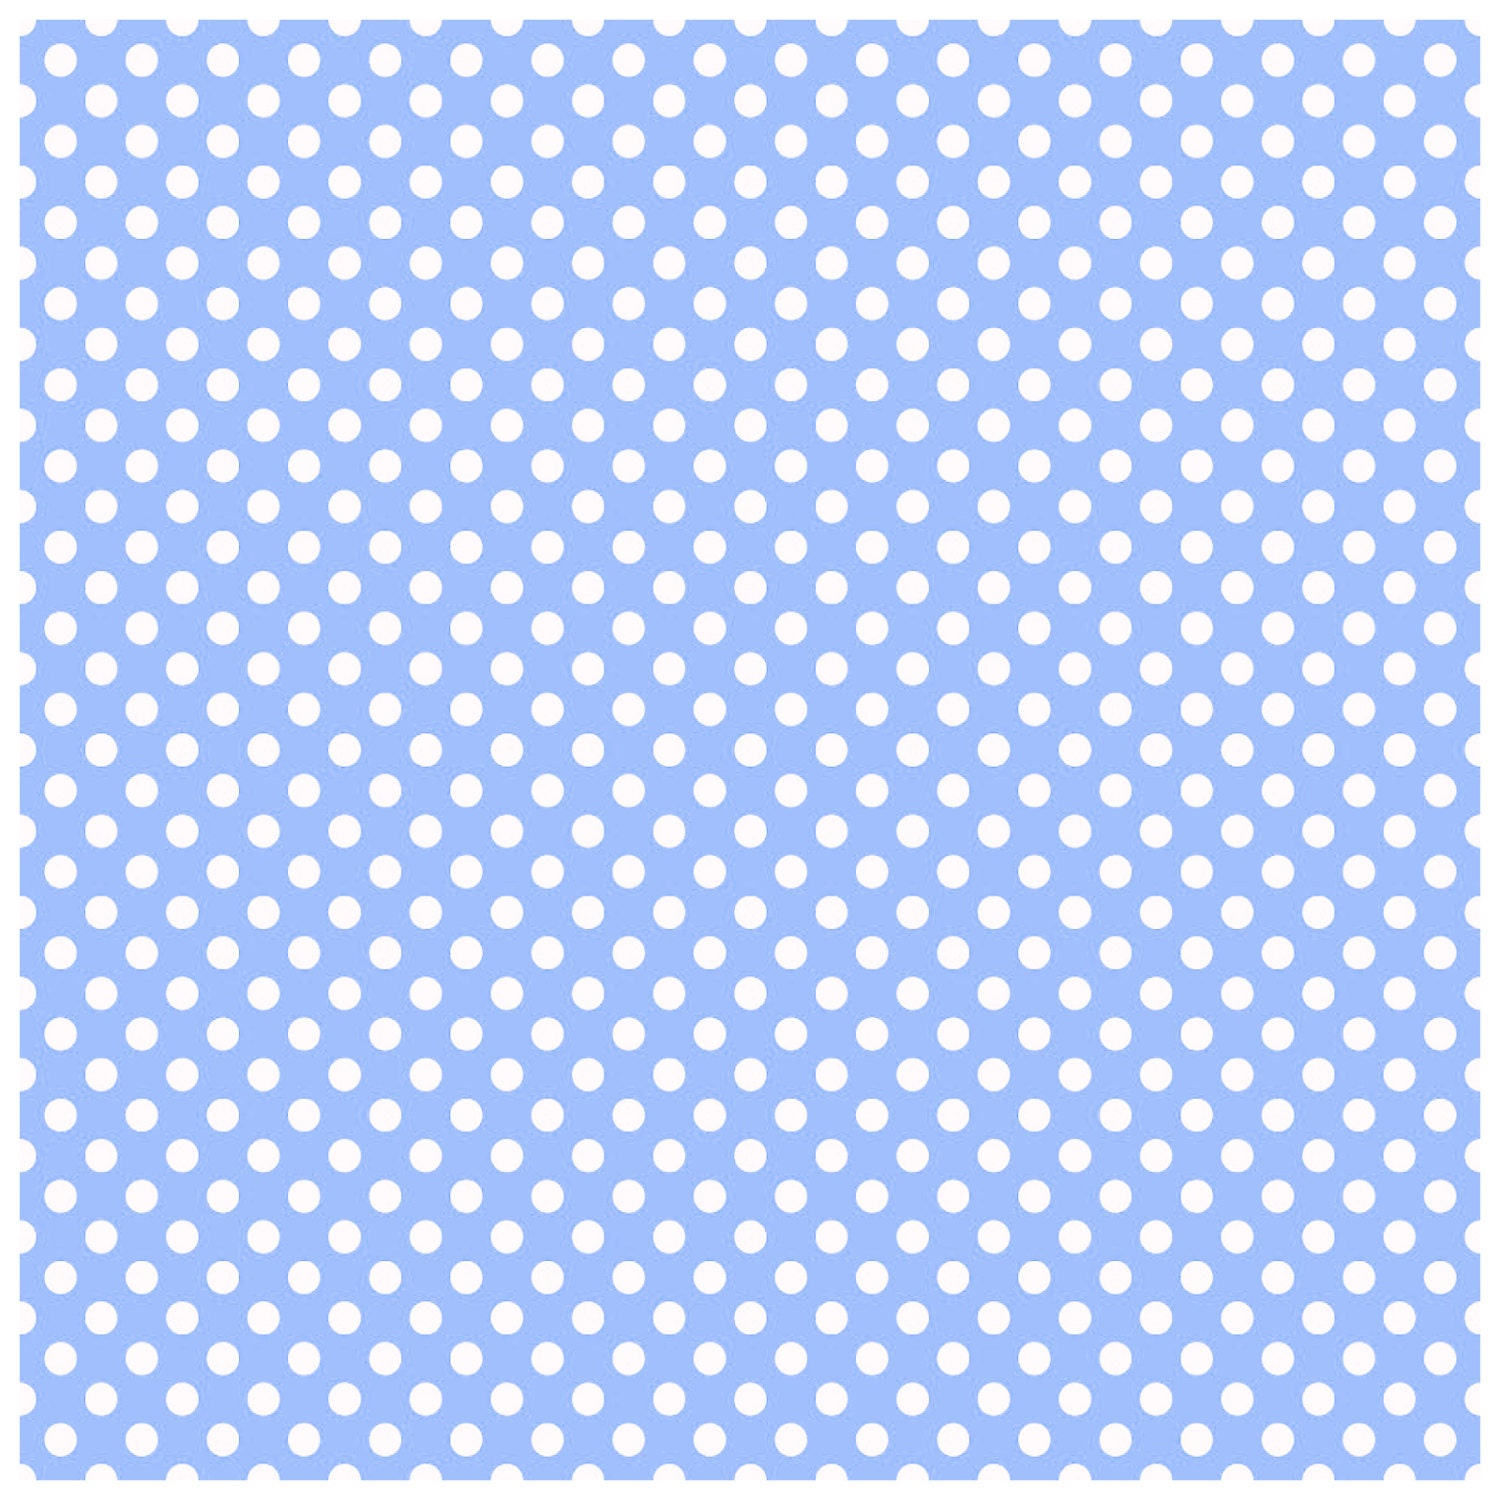 Baby Blue Polka Dot Gift Wrap 2 Sheets Of 70x50cm Wrapping